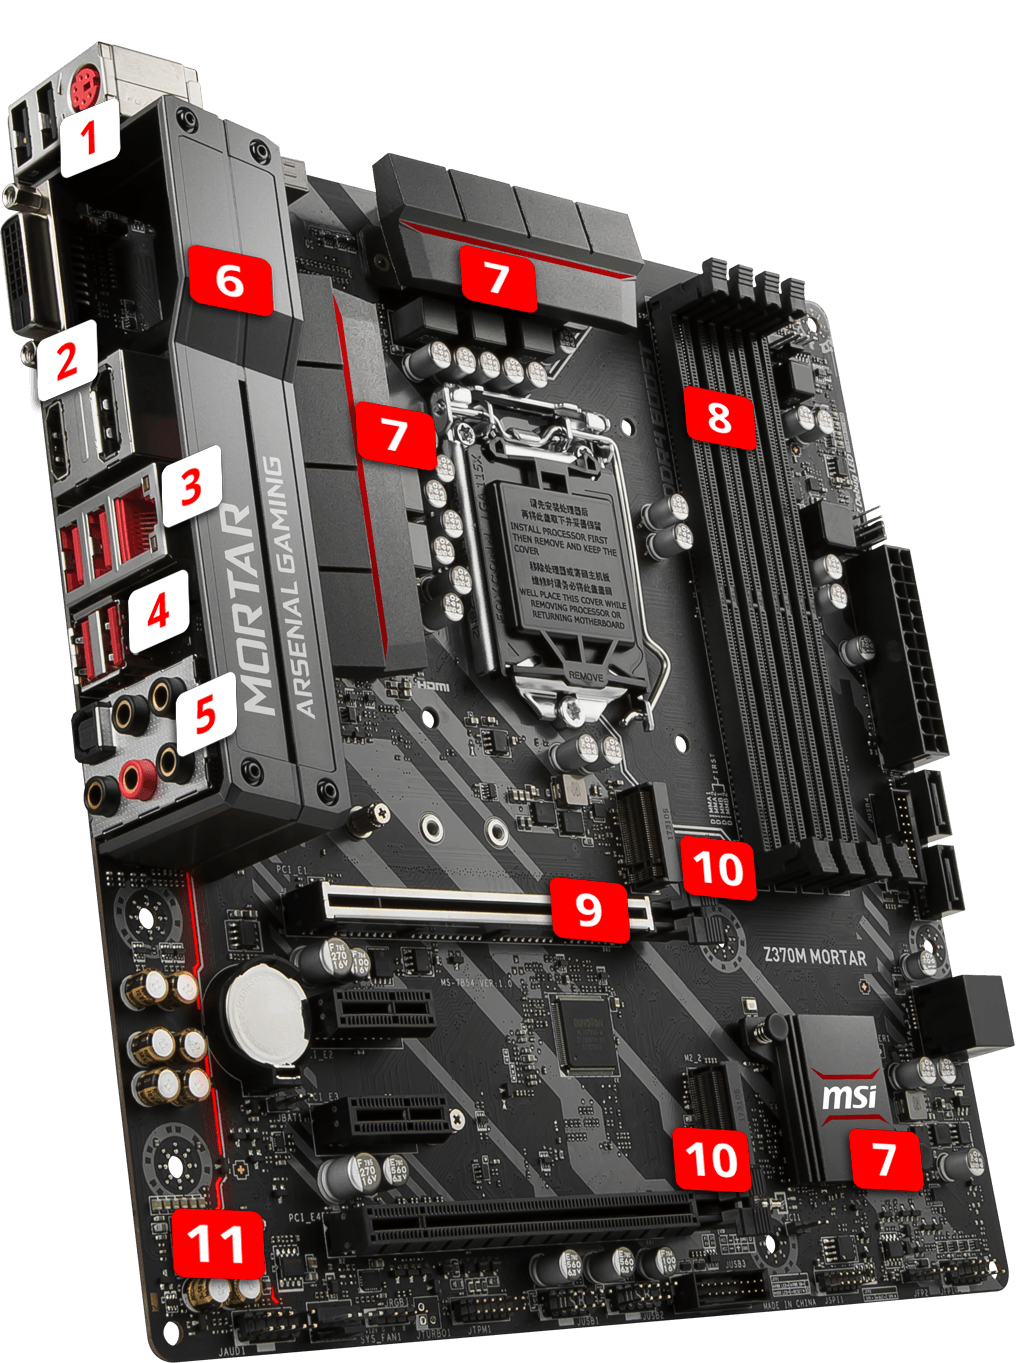 MSI Z370M MORTAR overview